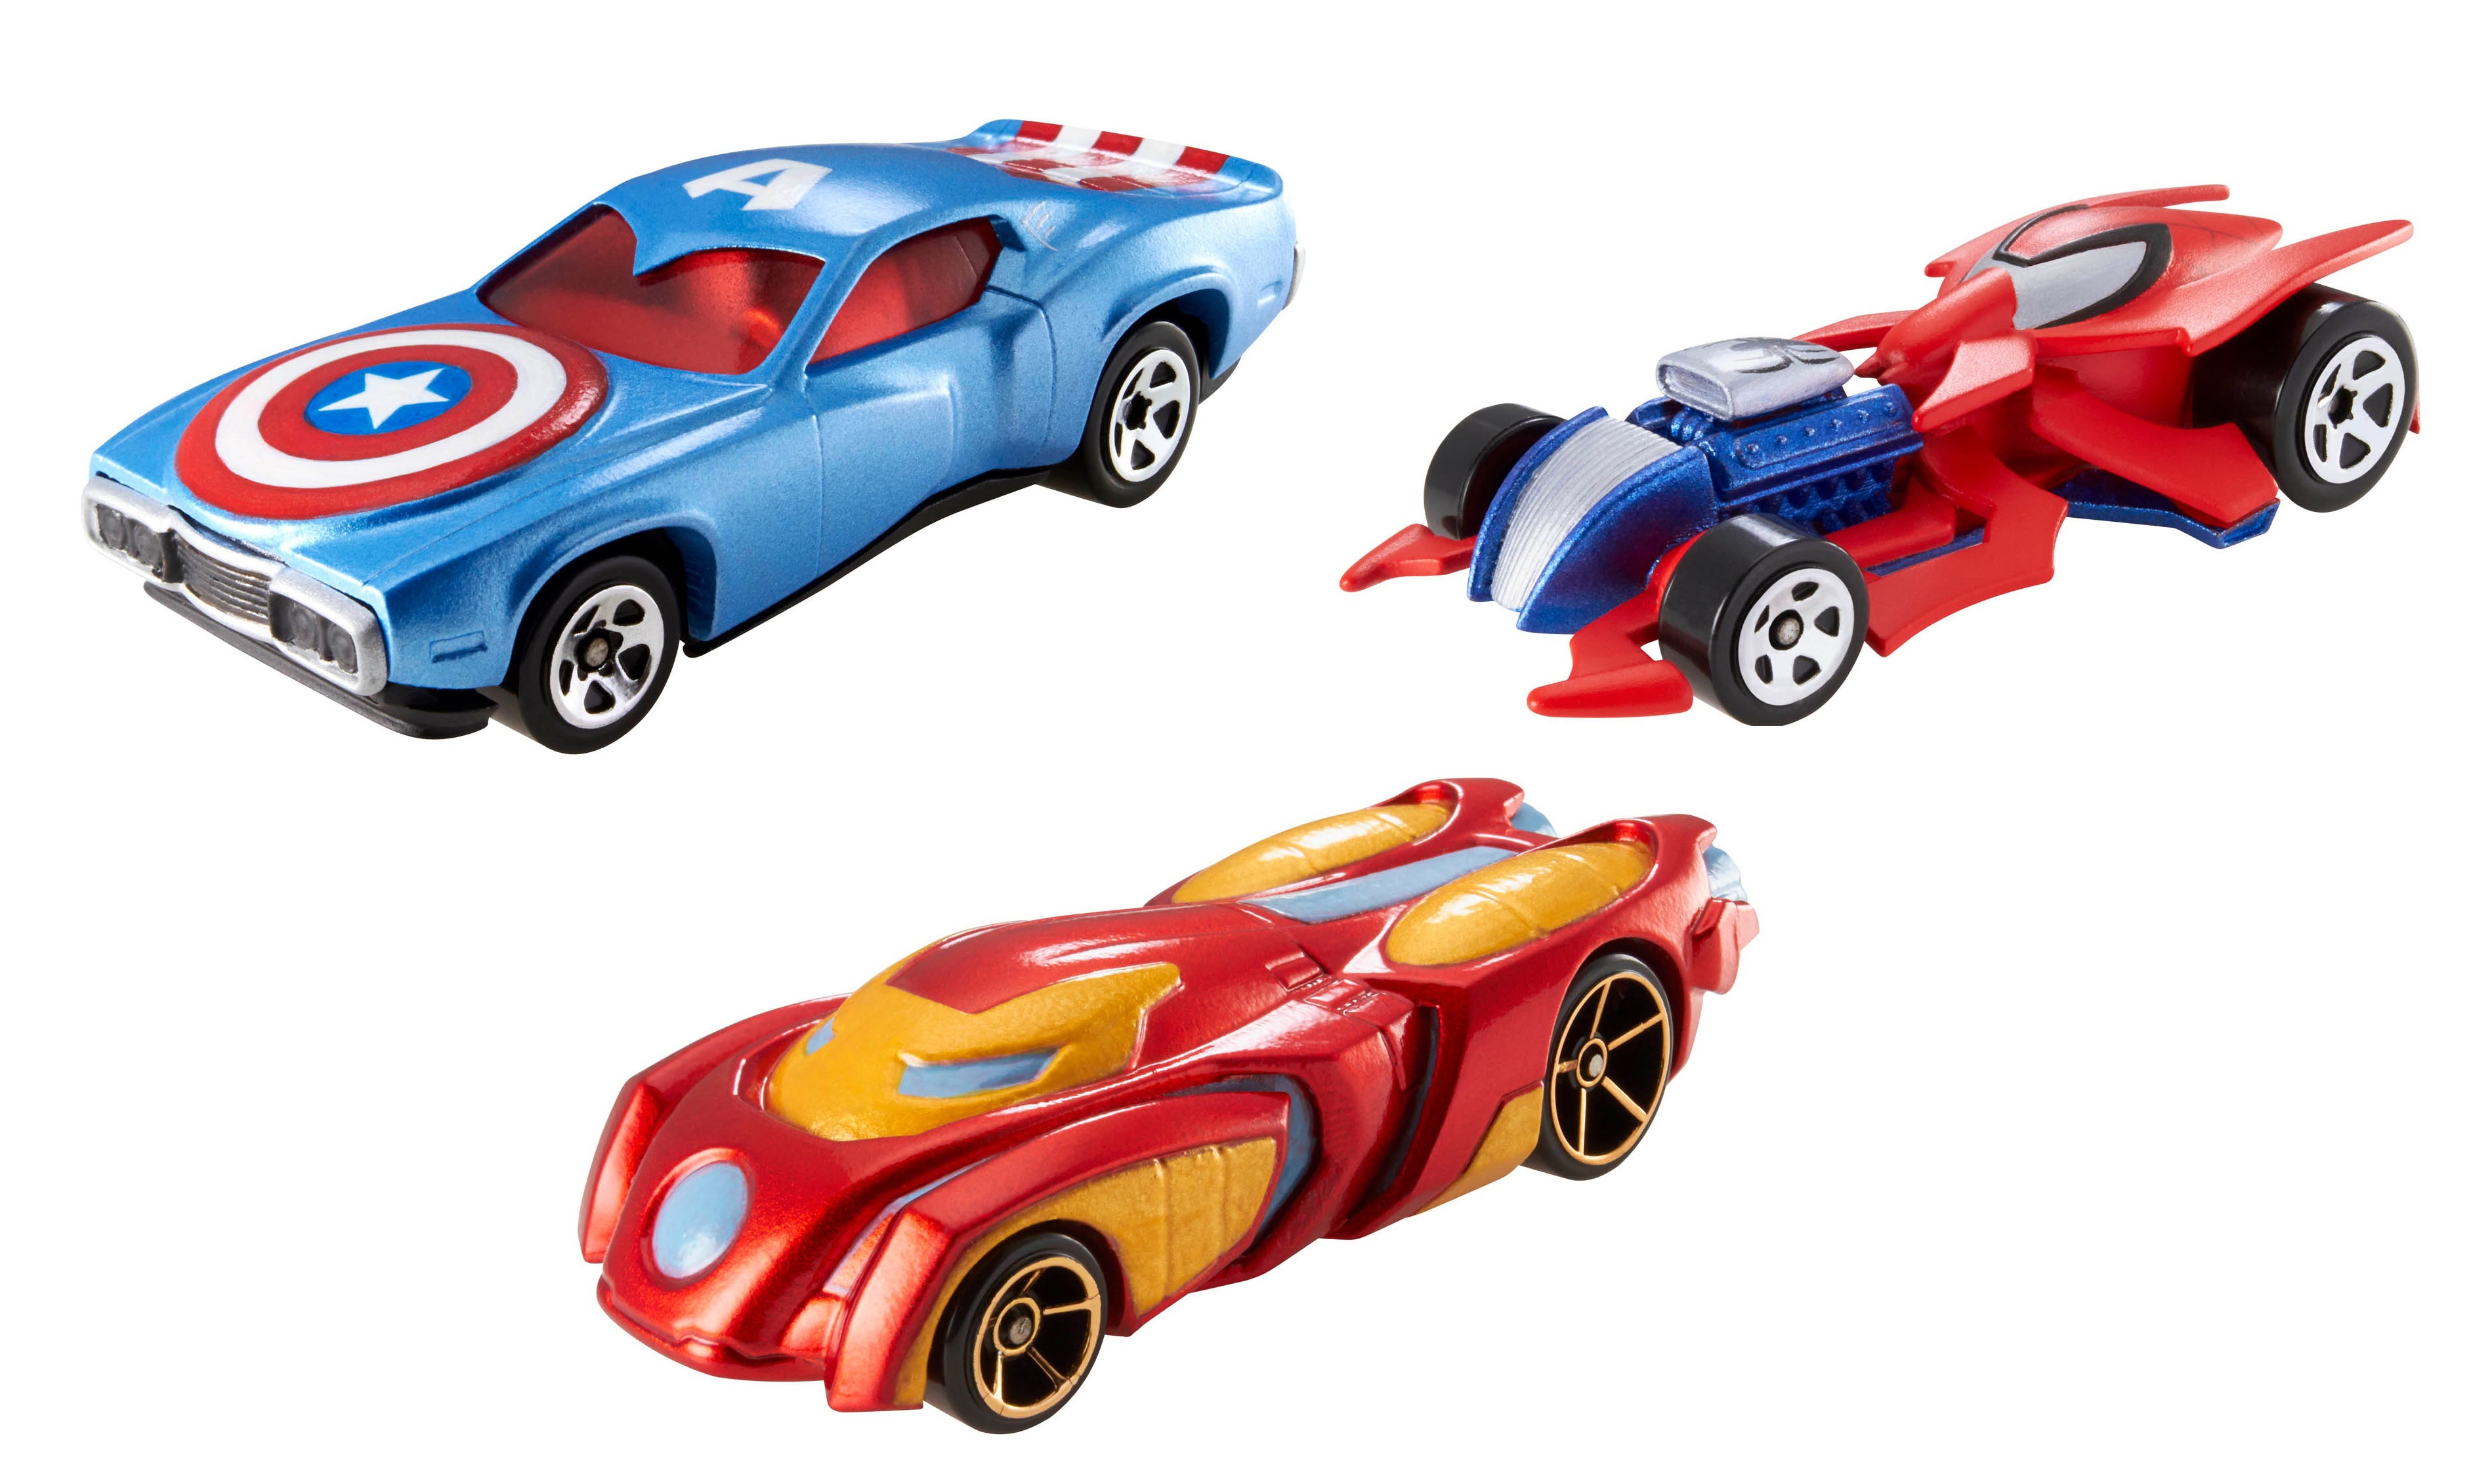 3797x2261 Awesome Disney Cars Wallpaper Border Wallpapers